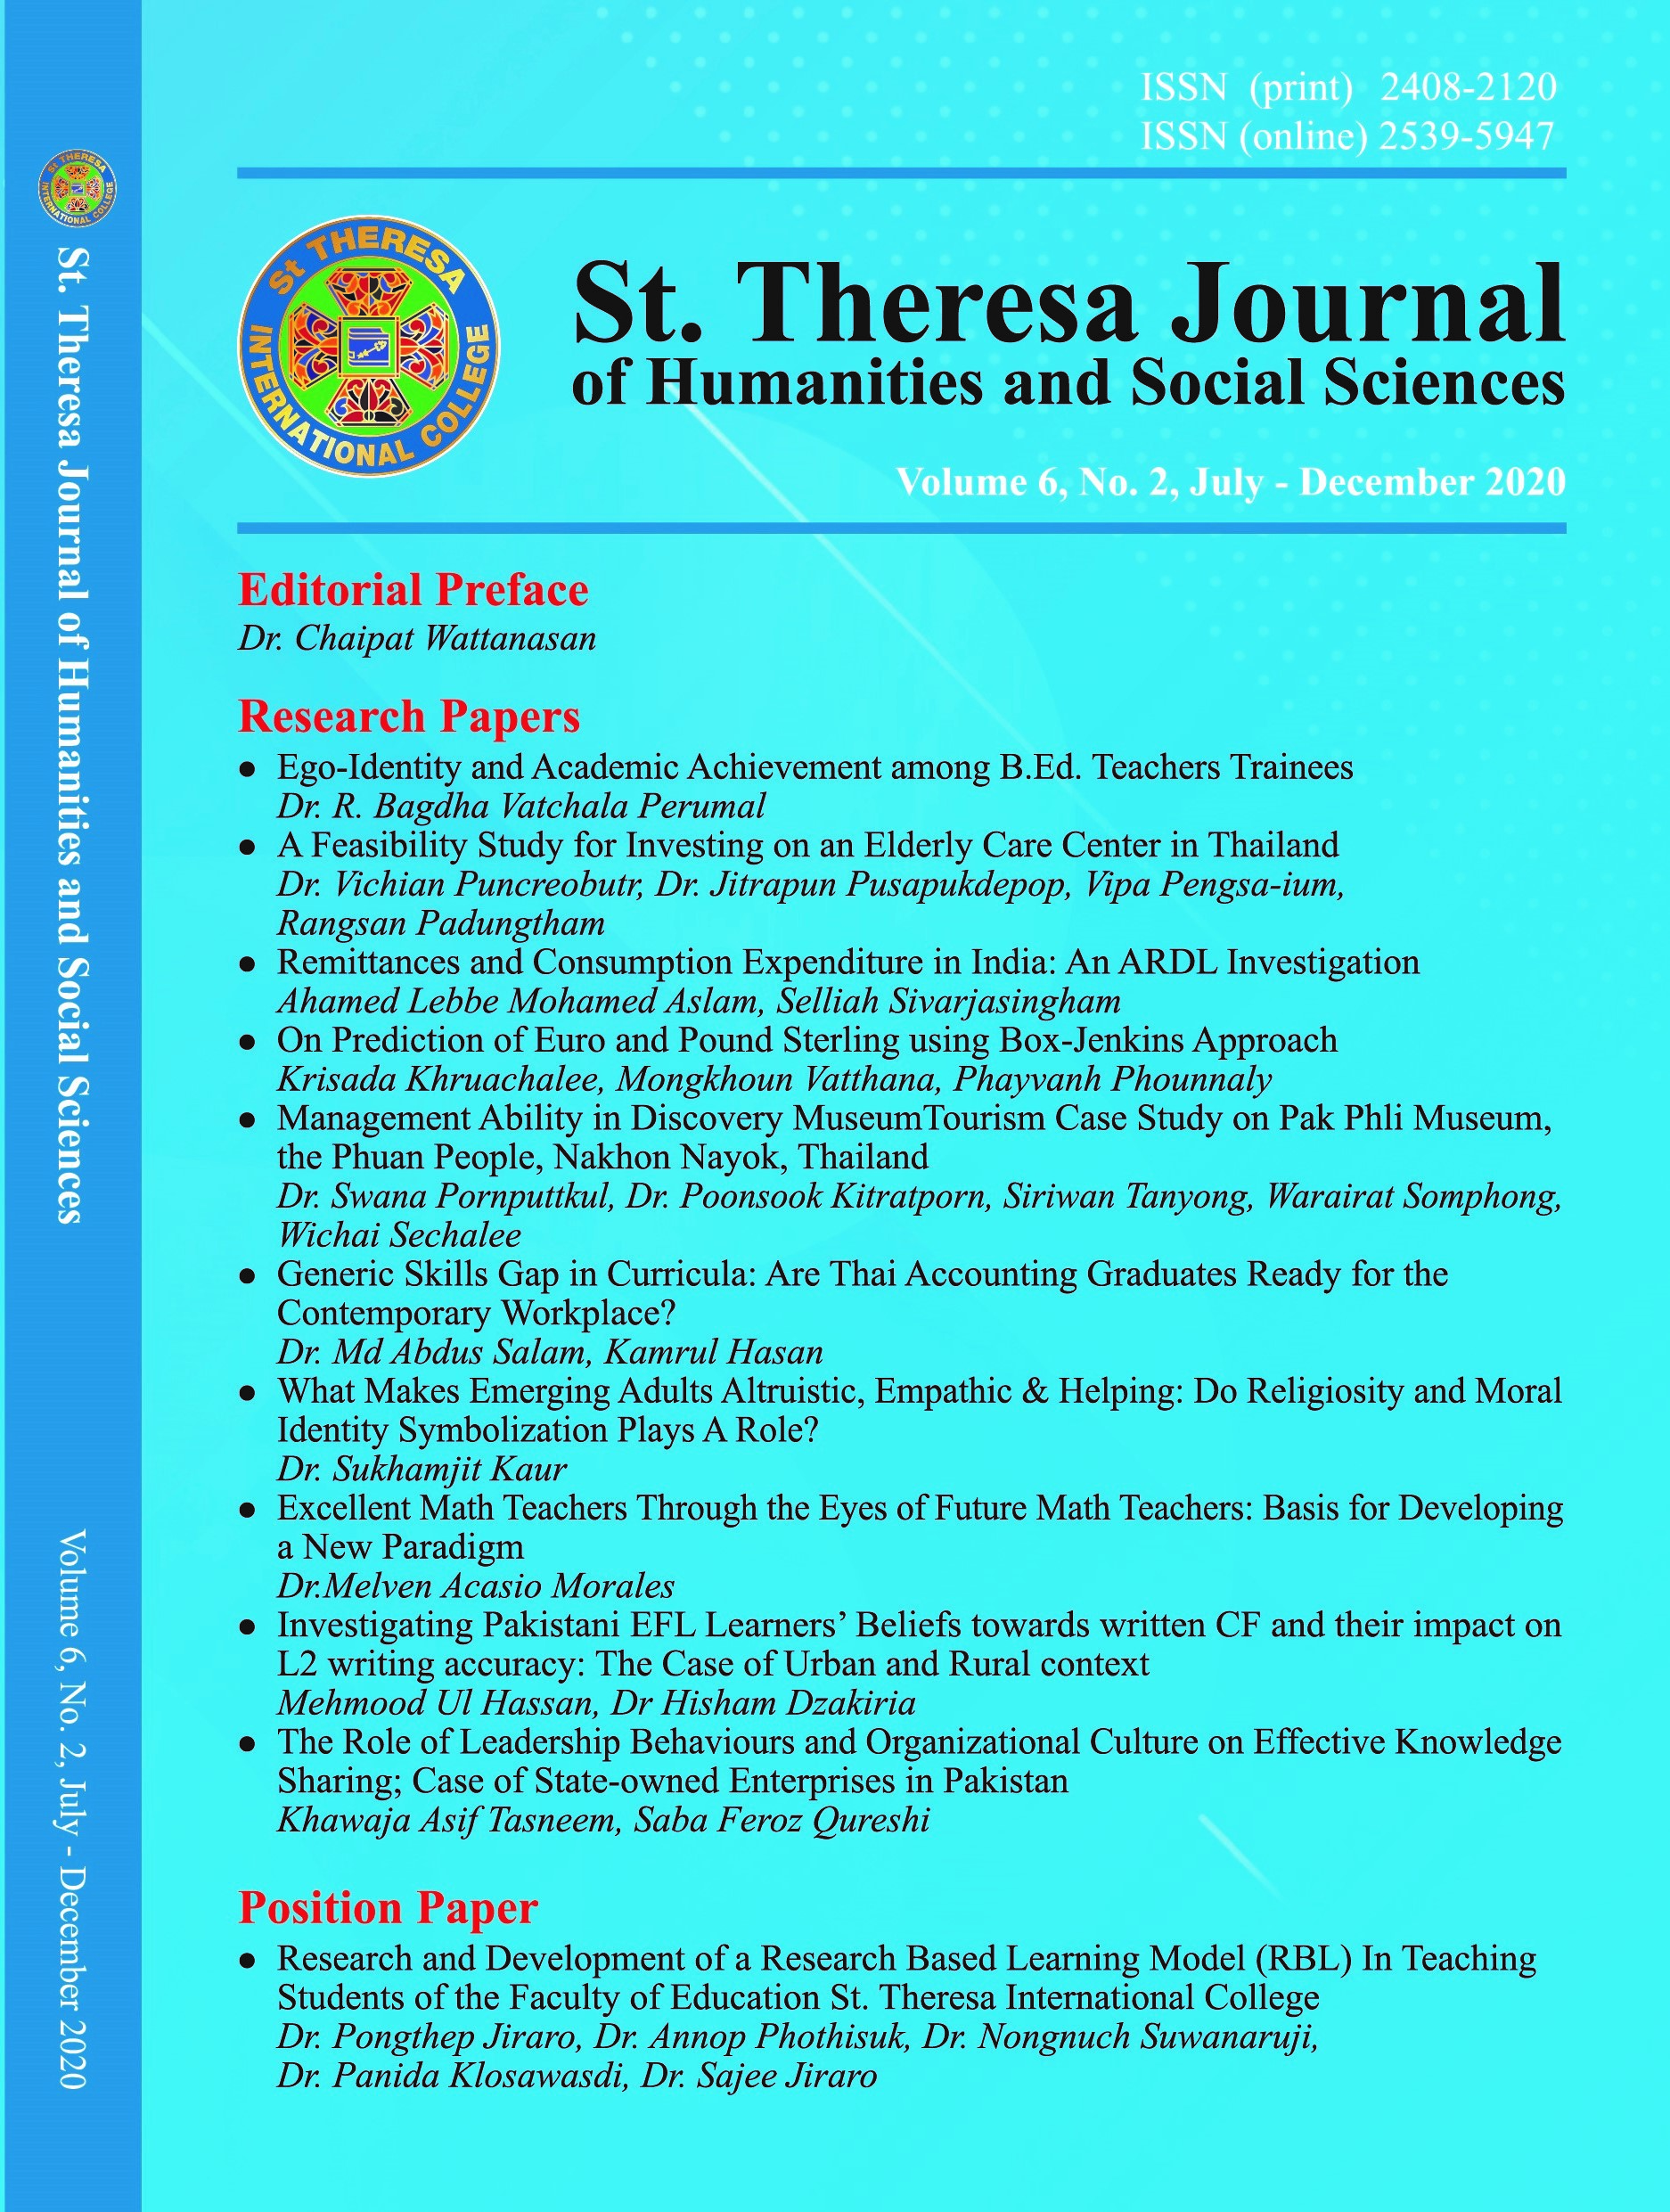 View Vol. 6 No. 2 (2020): St. Theresa Journal of Humanities and Social Sciences